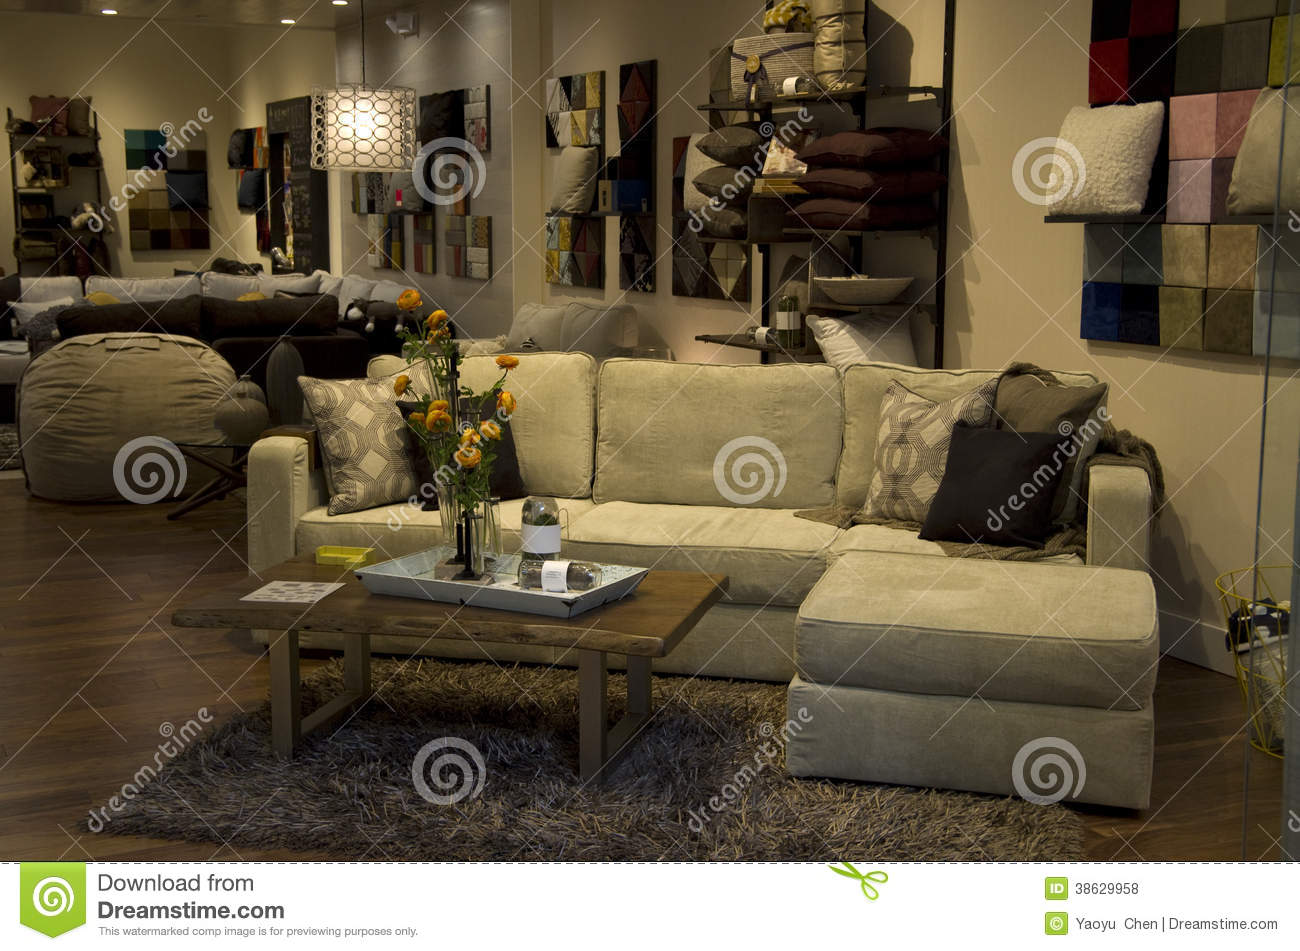 Luxury furniture store interiors royalty free stock photos for Furniture warehouse seattle